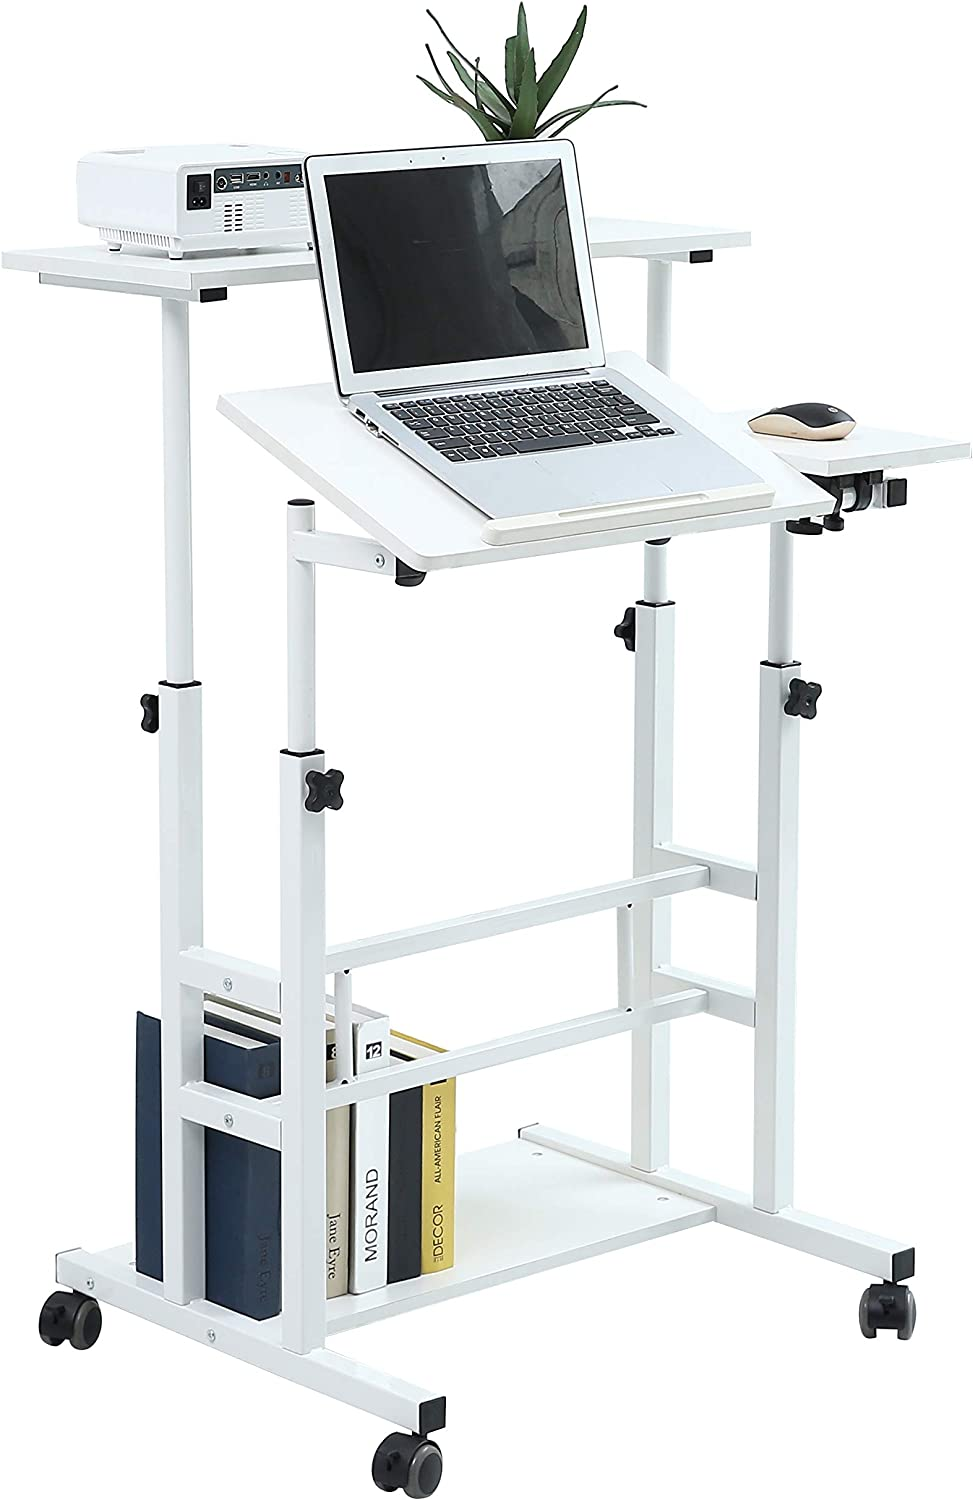 Unicoo Rolling Laptop Cart Height Adjustable Sit Stand Workstation Mobile Standing Desk Rolling Presentation Cart Computer Workstation White U101 Office Products